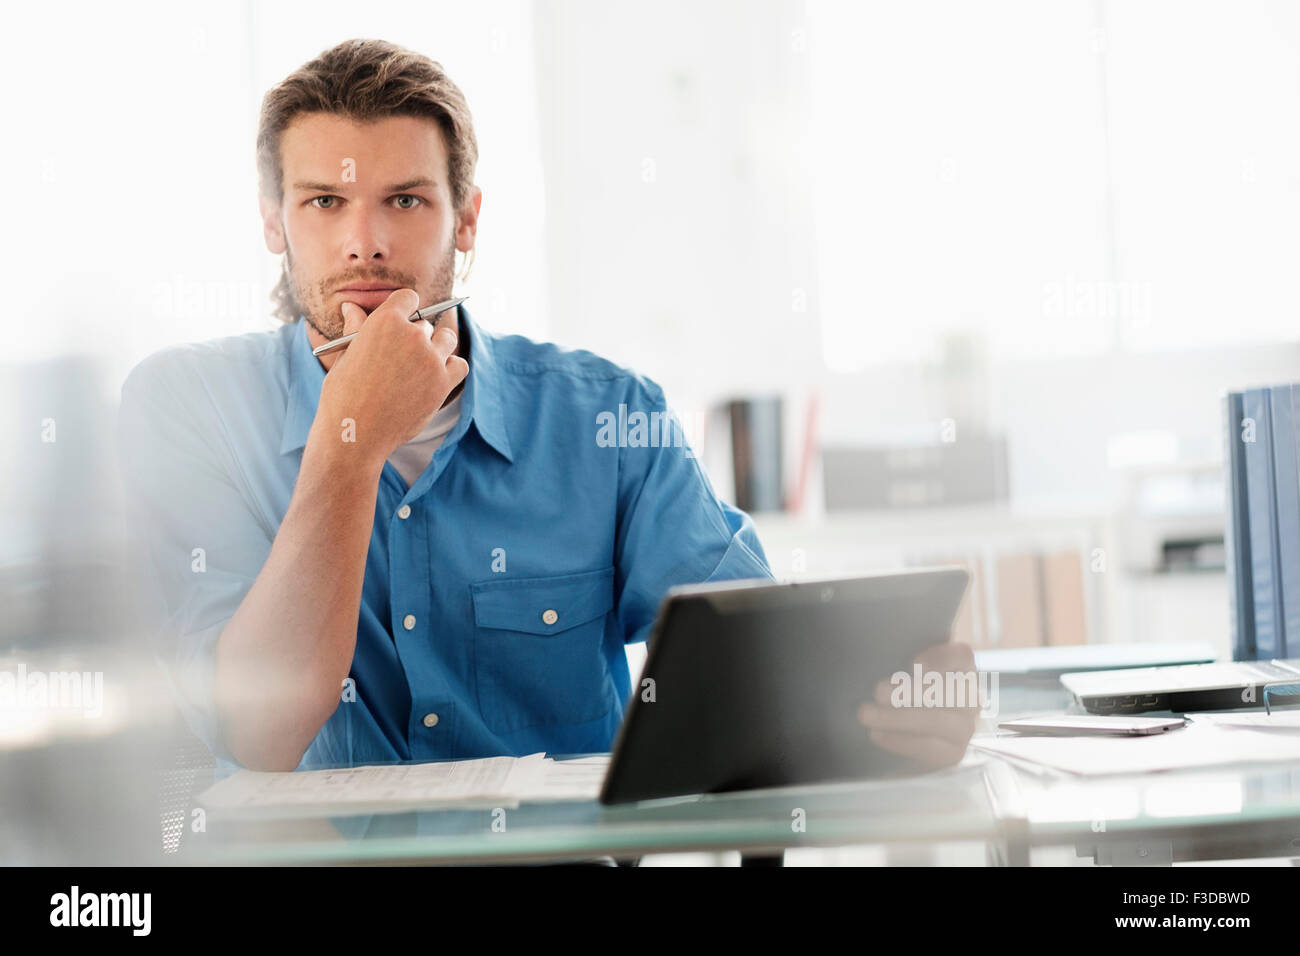 Portrait of mid-adult businessman working in office Photo Stock